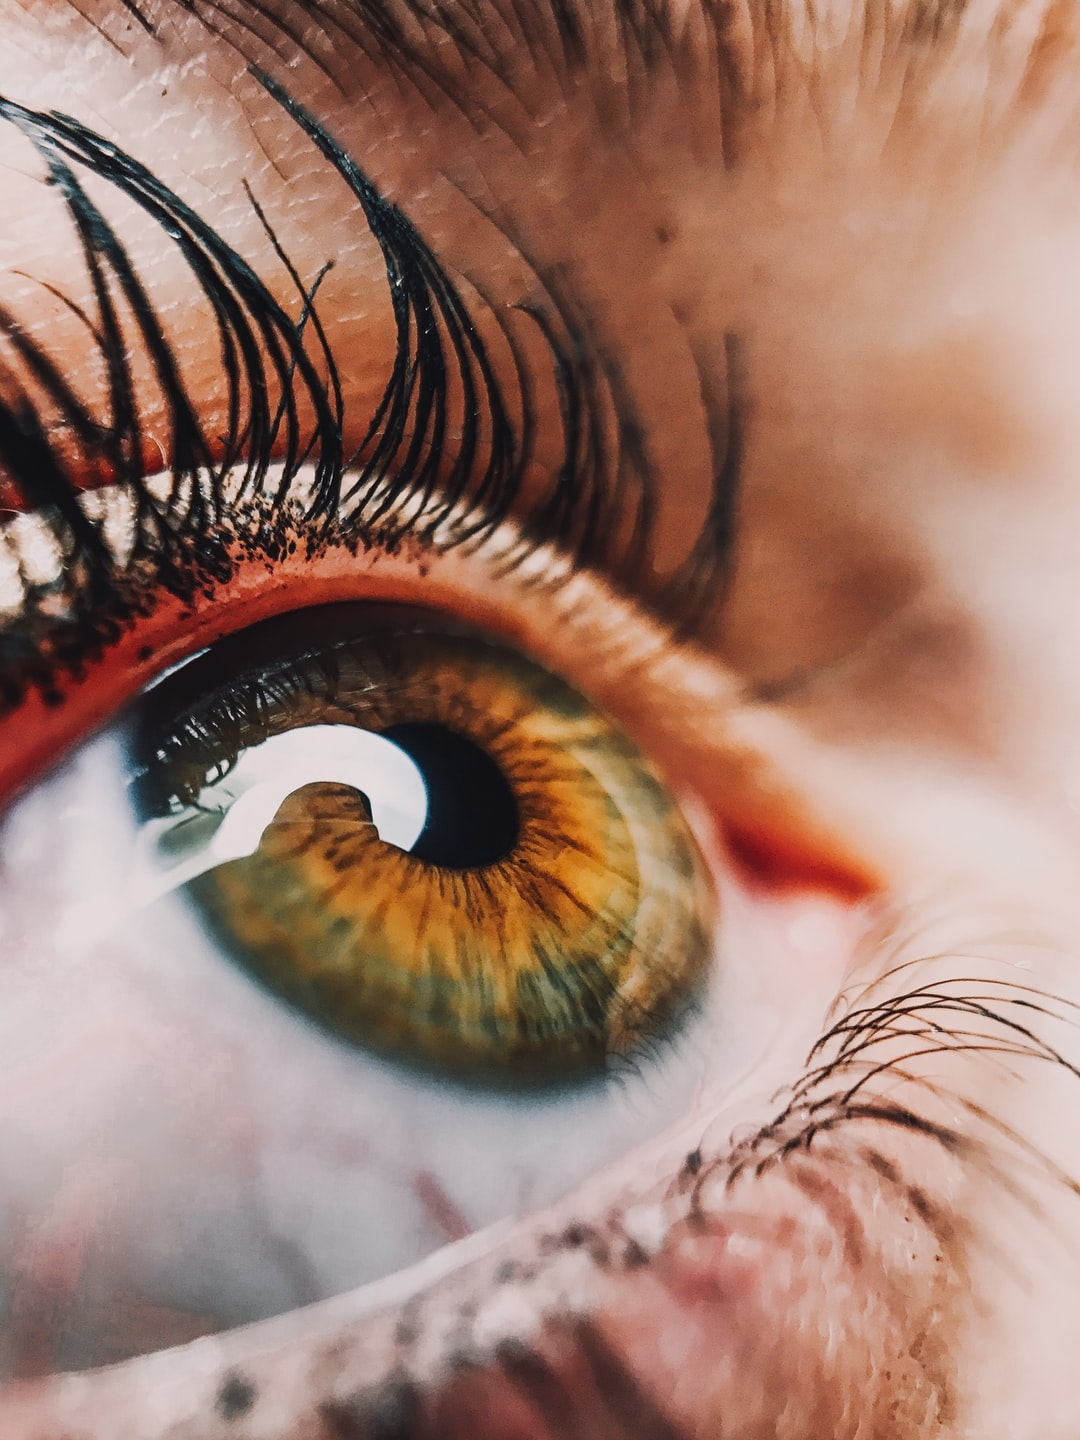 7 Tips for Maintaining Good Eye and Vision Health